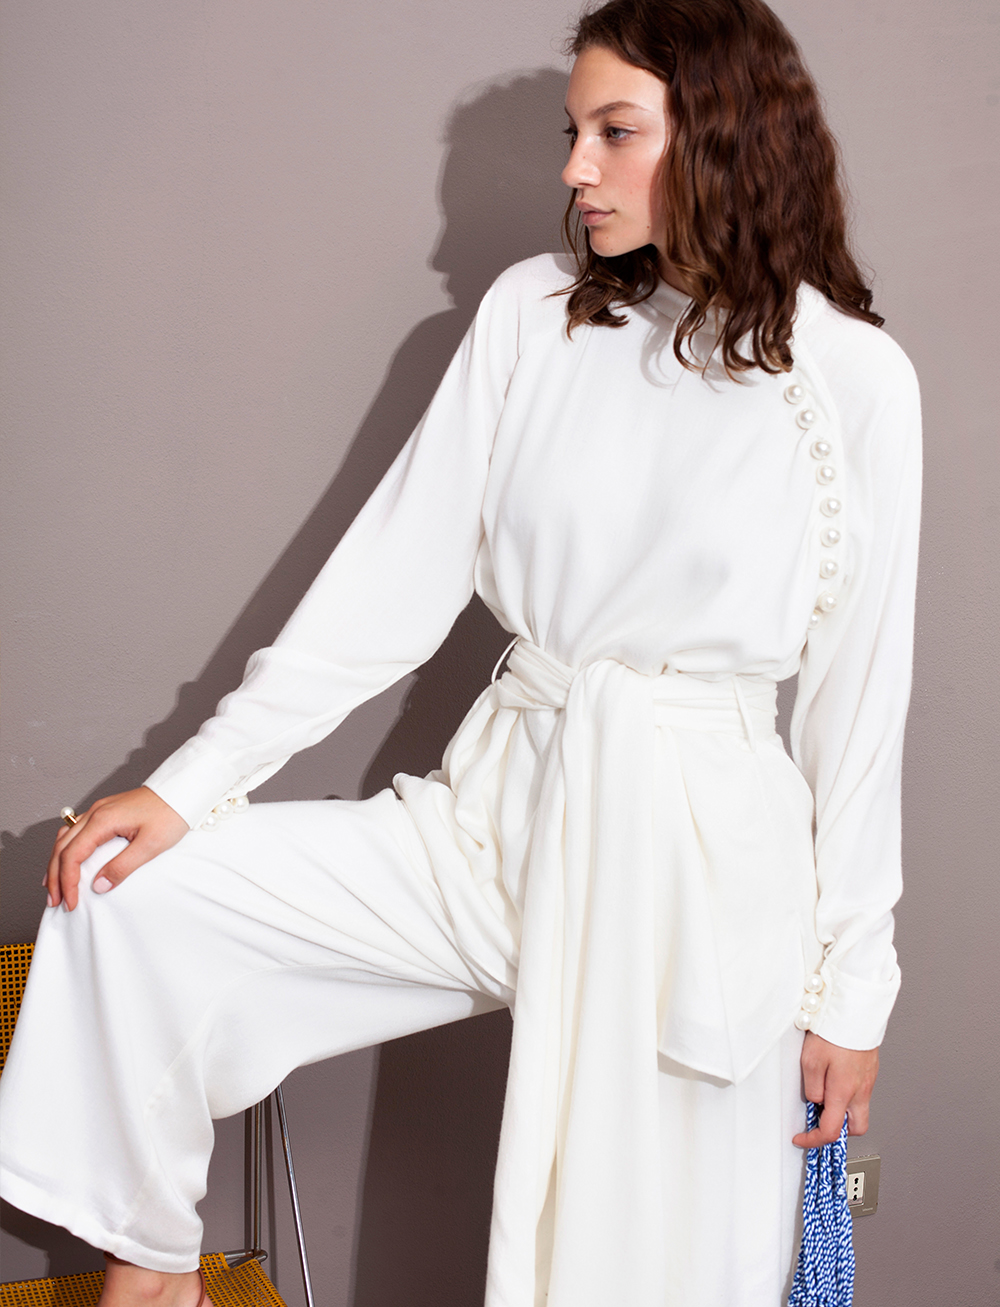 Jubilee Blouse by Manurí on curated-crowd.com